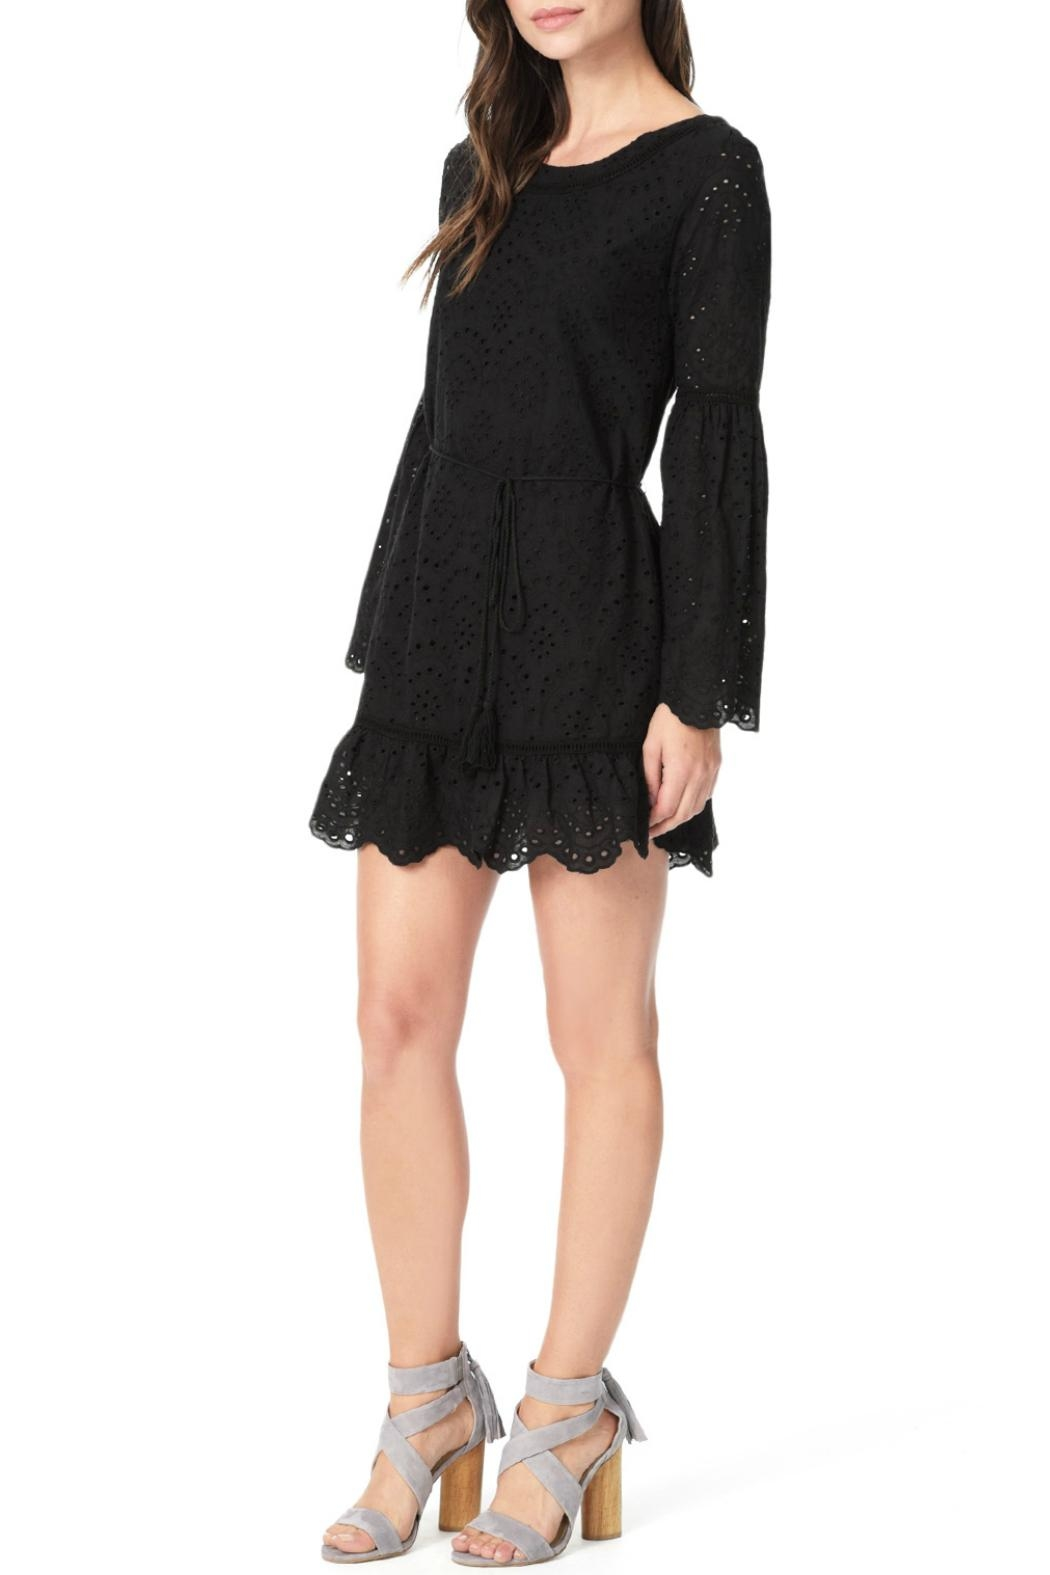 Cupcakes and Cashmere Ruben Flutter Dress - Side Cropped Image